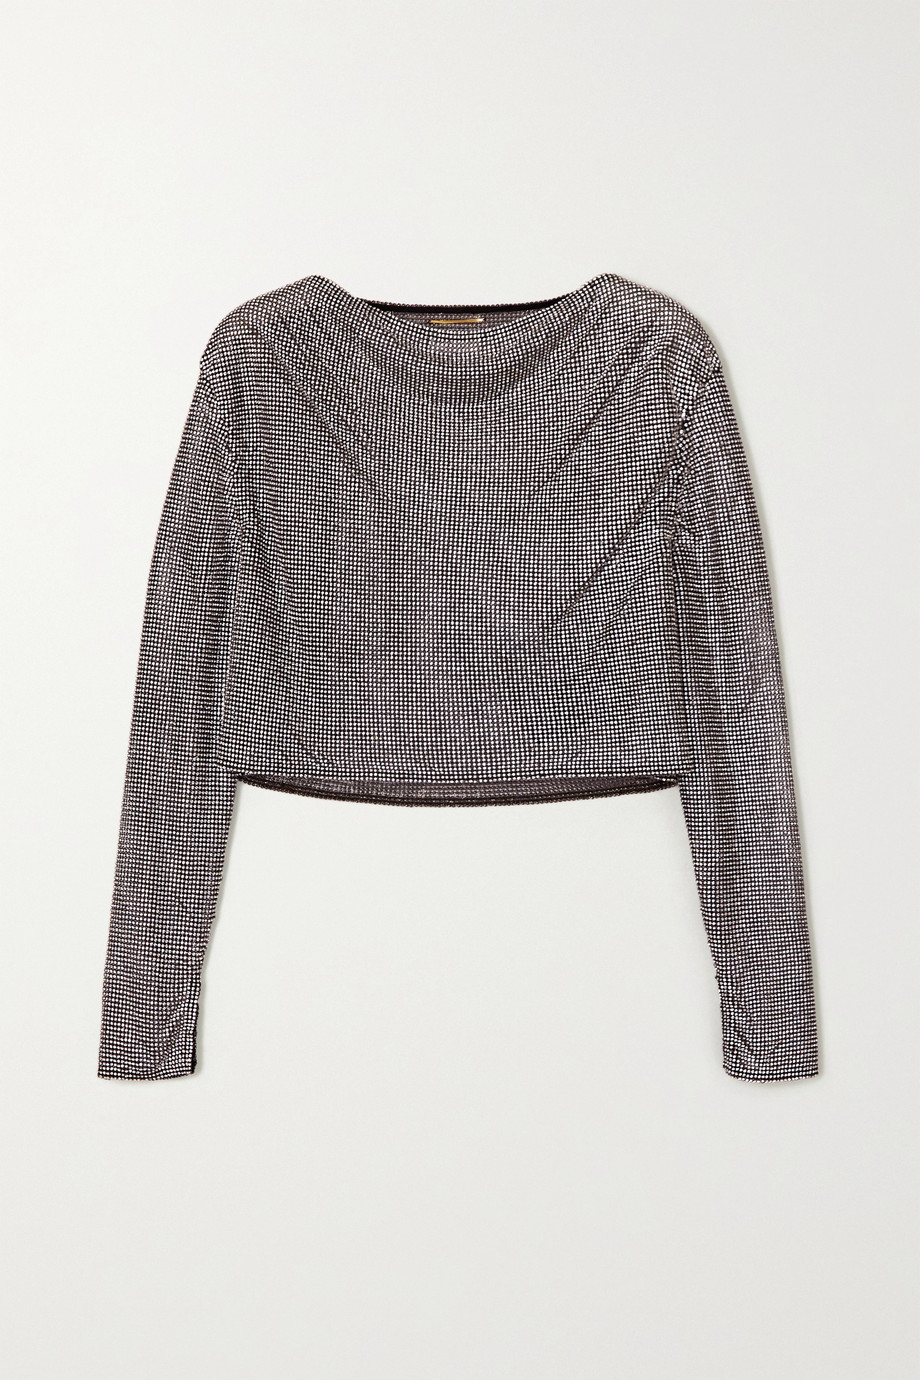 SAINT LAURENT Cropped crystal-embellished chainmail top